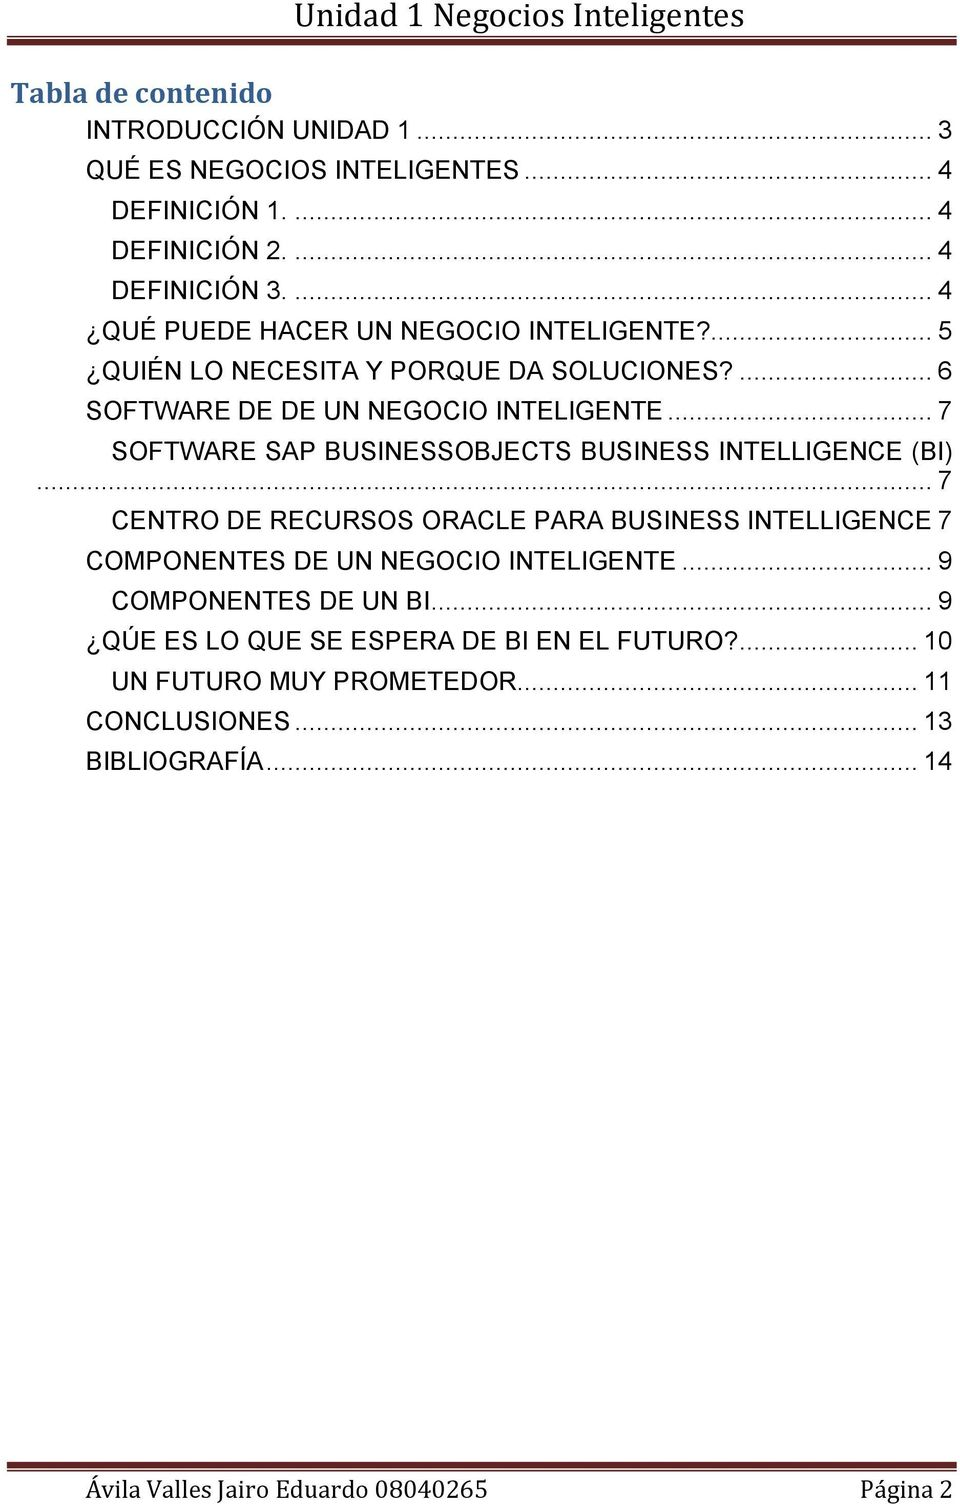 .. 7 SOFTWARE SAP BUSINESSOBJECTS BUSINESS INTELLIGENCE (BI).